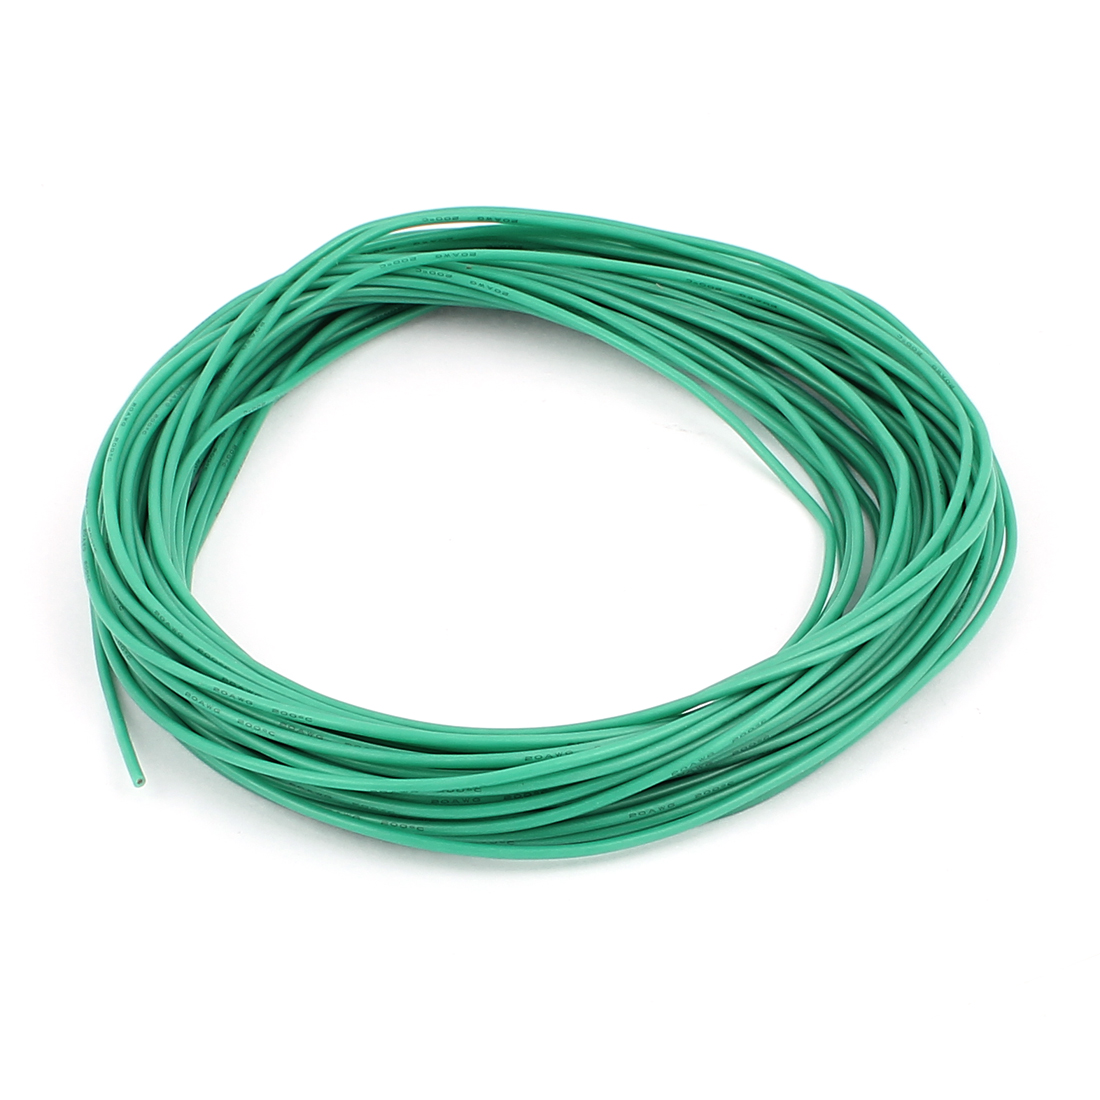 15M 20AWG Electric Copper Core Flexible Silicone Wire Cable Green